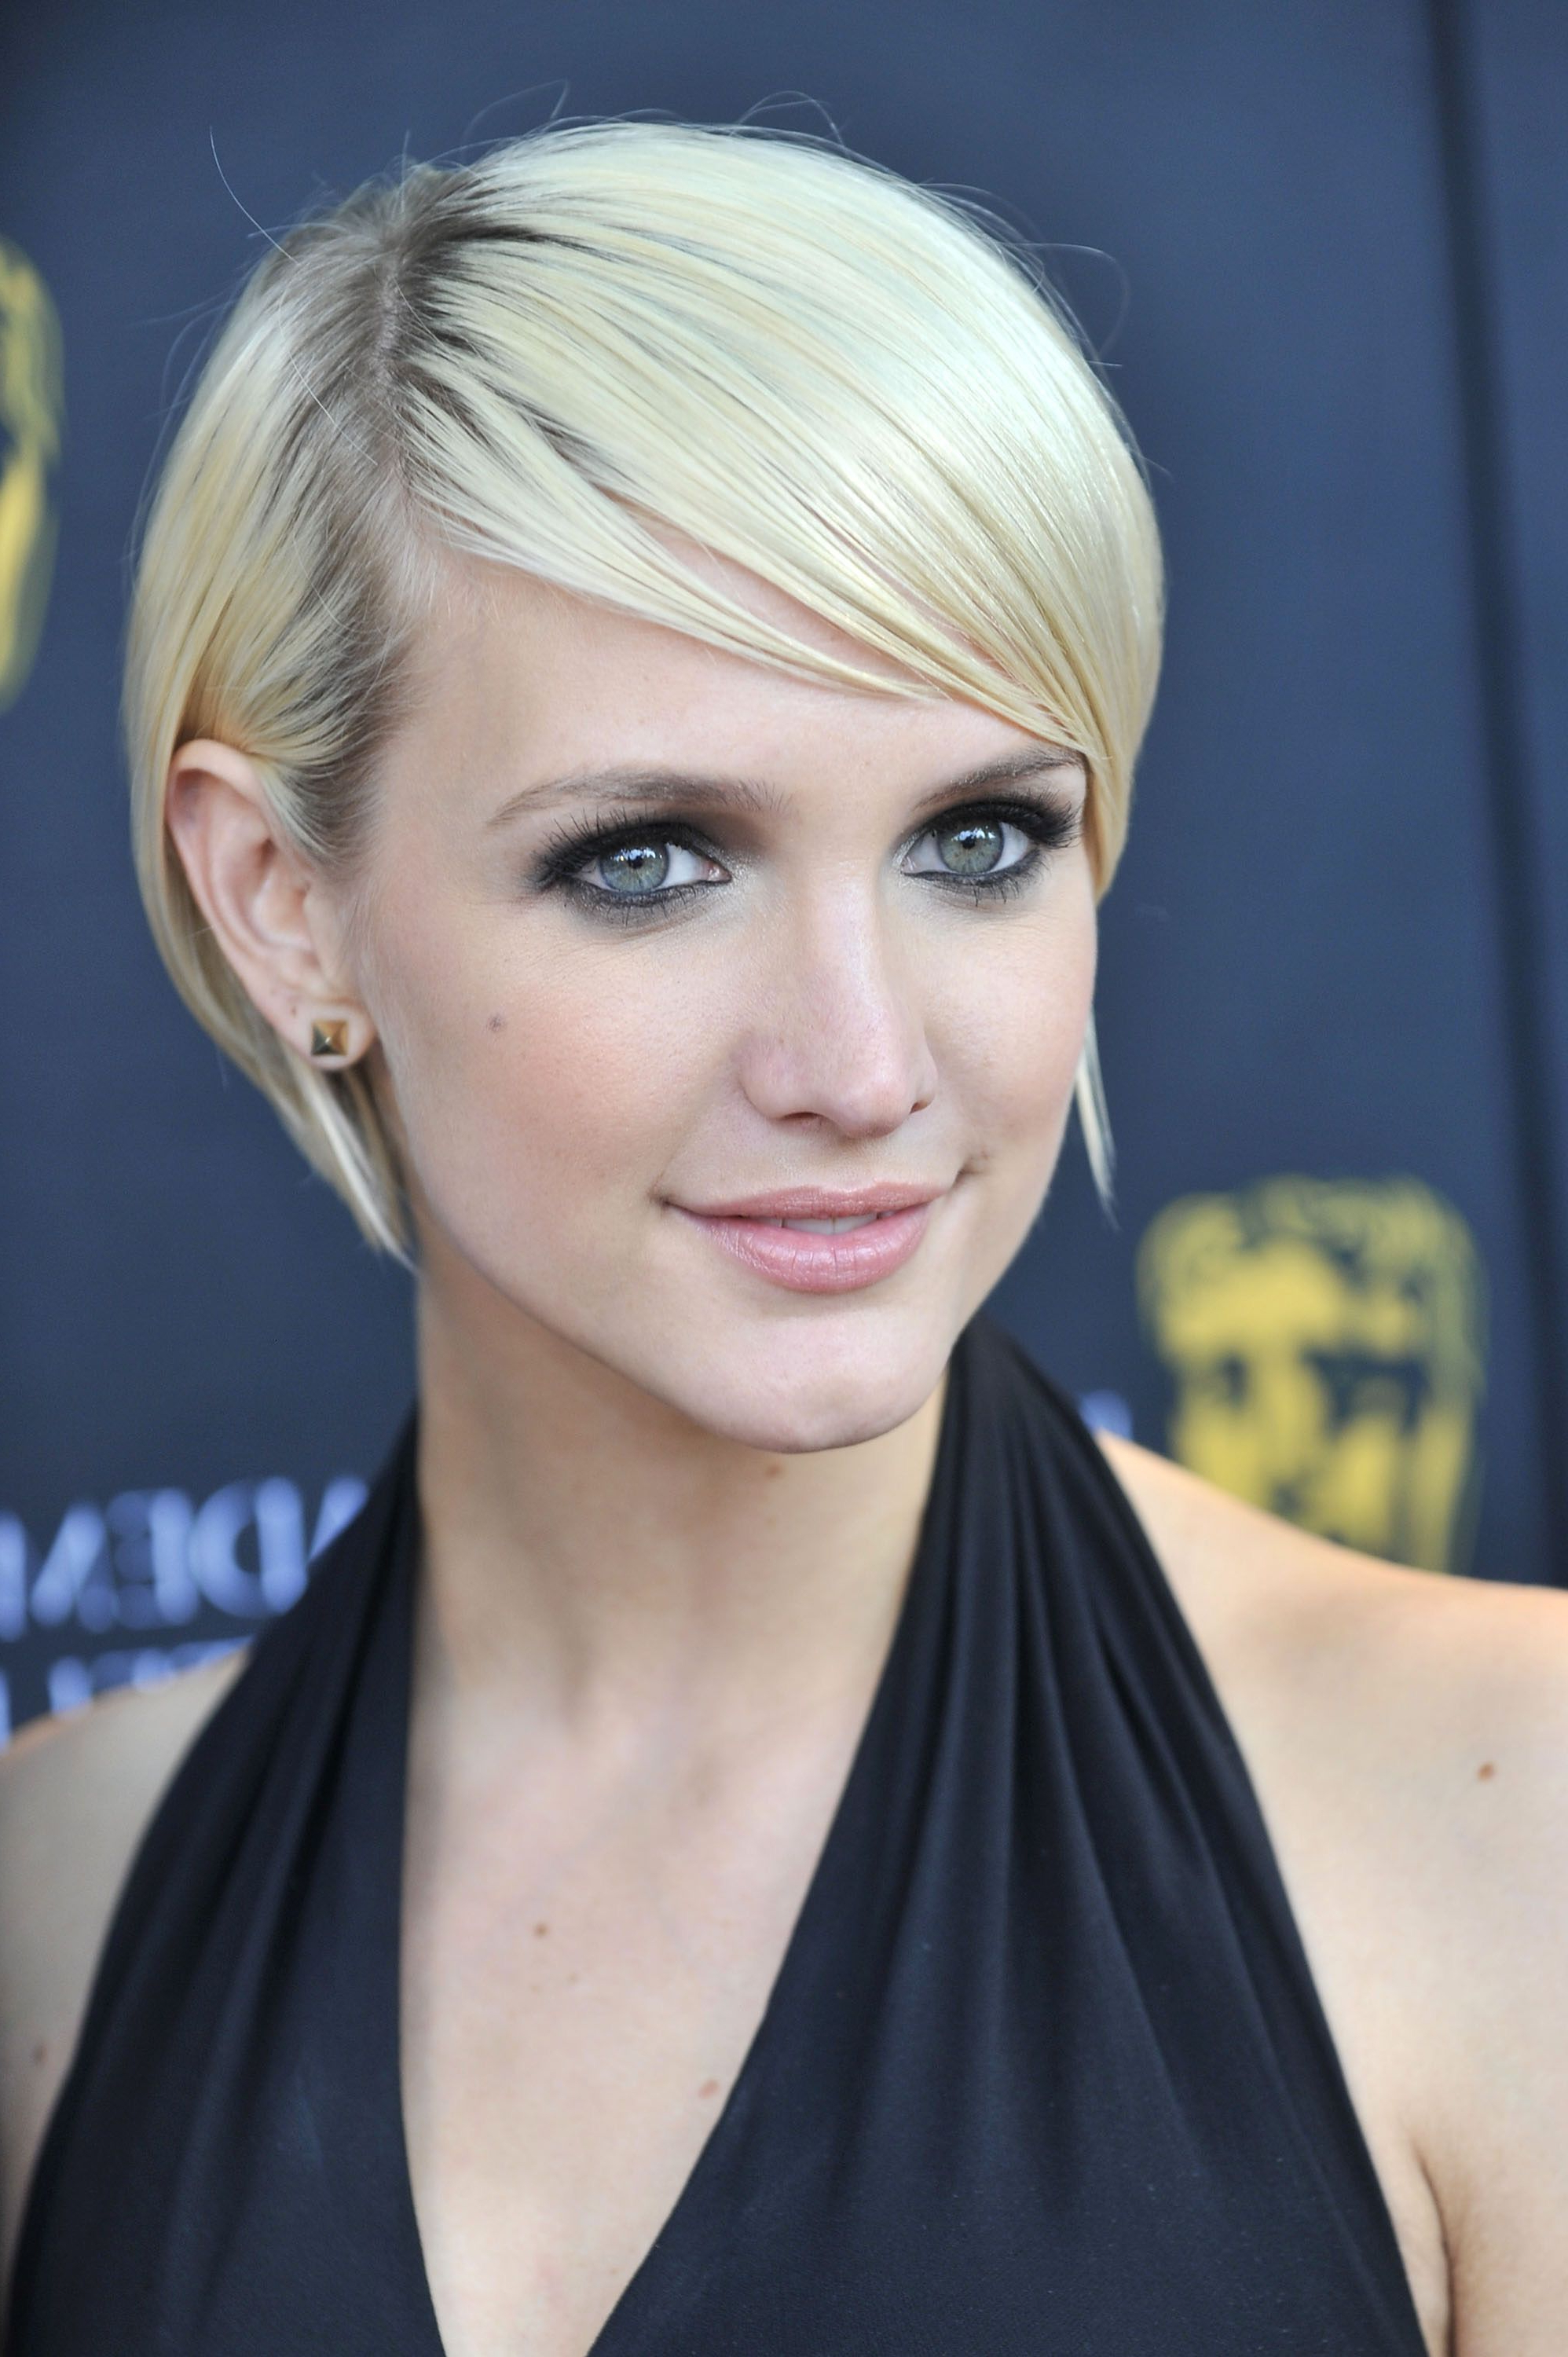 Ashlee Simpson Short Hair  So Wish I Could This!   Good Hair Throughout Ashlee Simpson Short Hairstyles (Gallery 5 of 25)